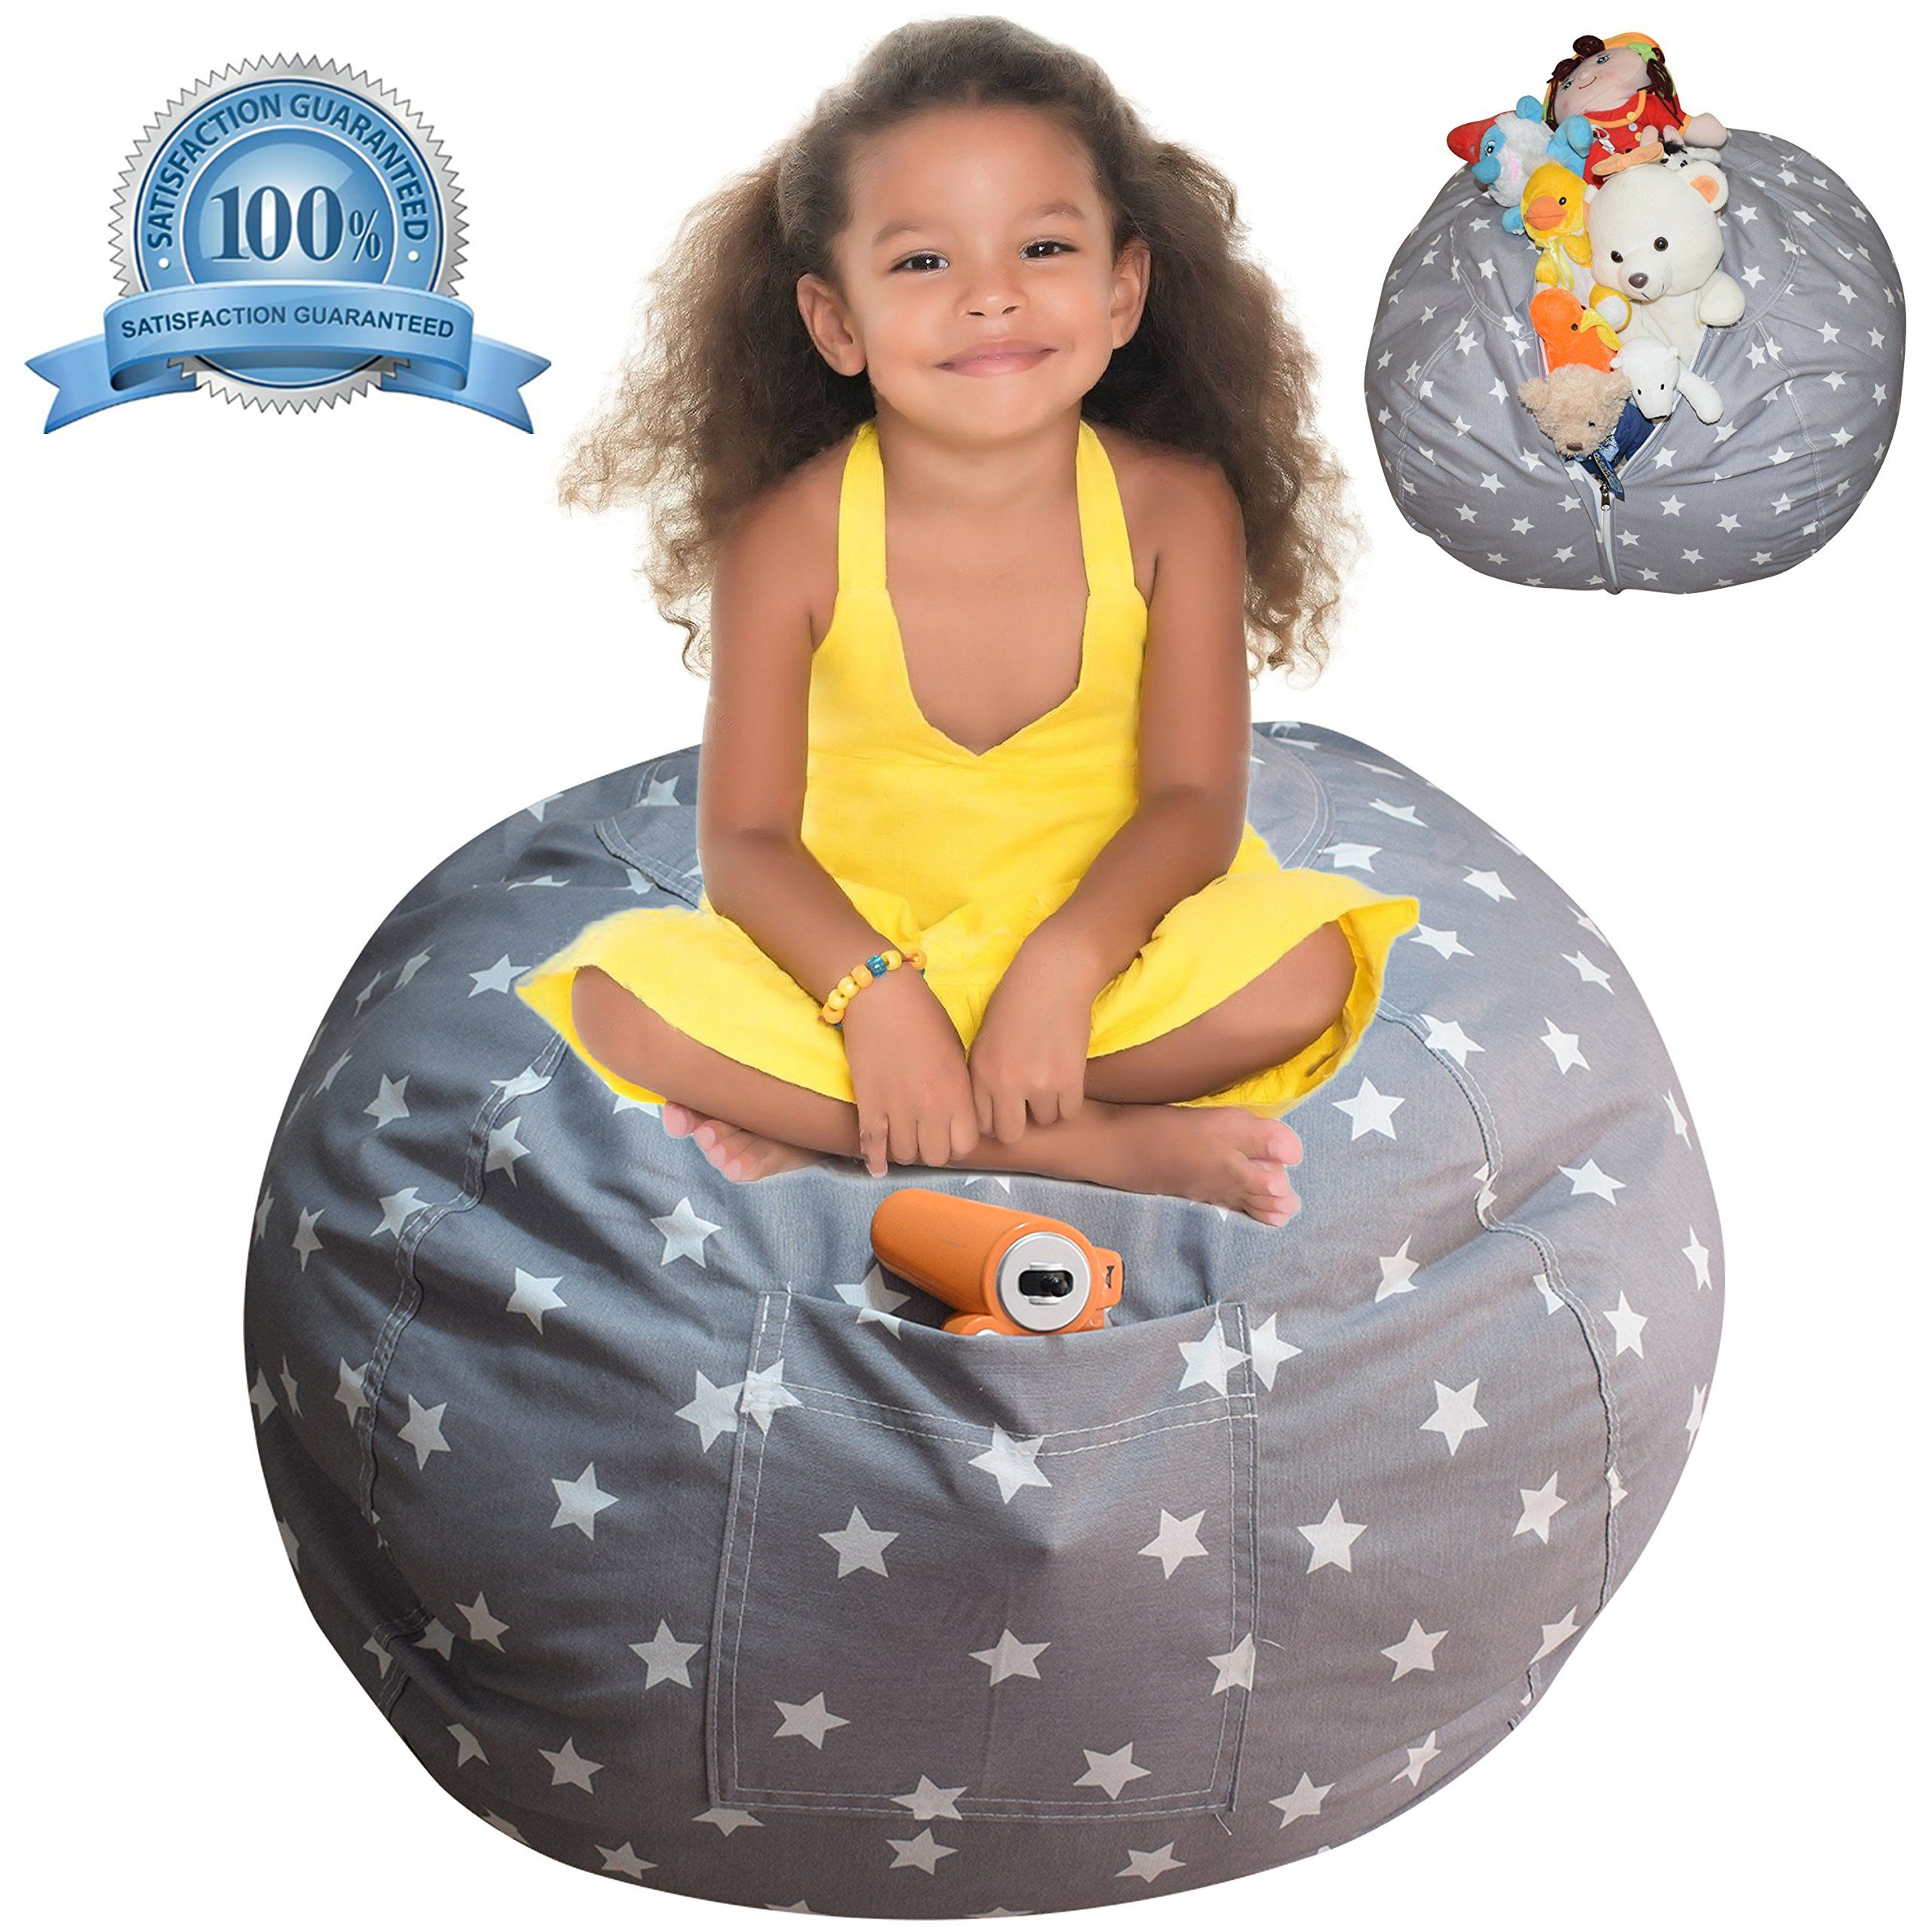 Marvelous Extra Large Stuffed Animal Storage Bean Bag Cover Lab Tested Squirreltailoven Fun Painted Chair Ideas Images Squirreltailovenorg